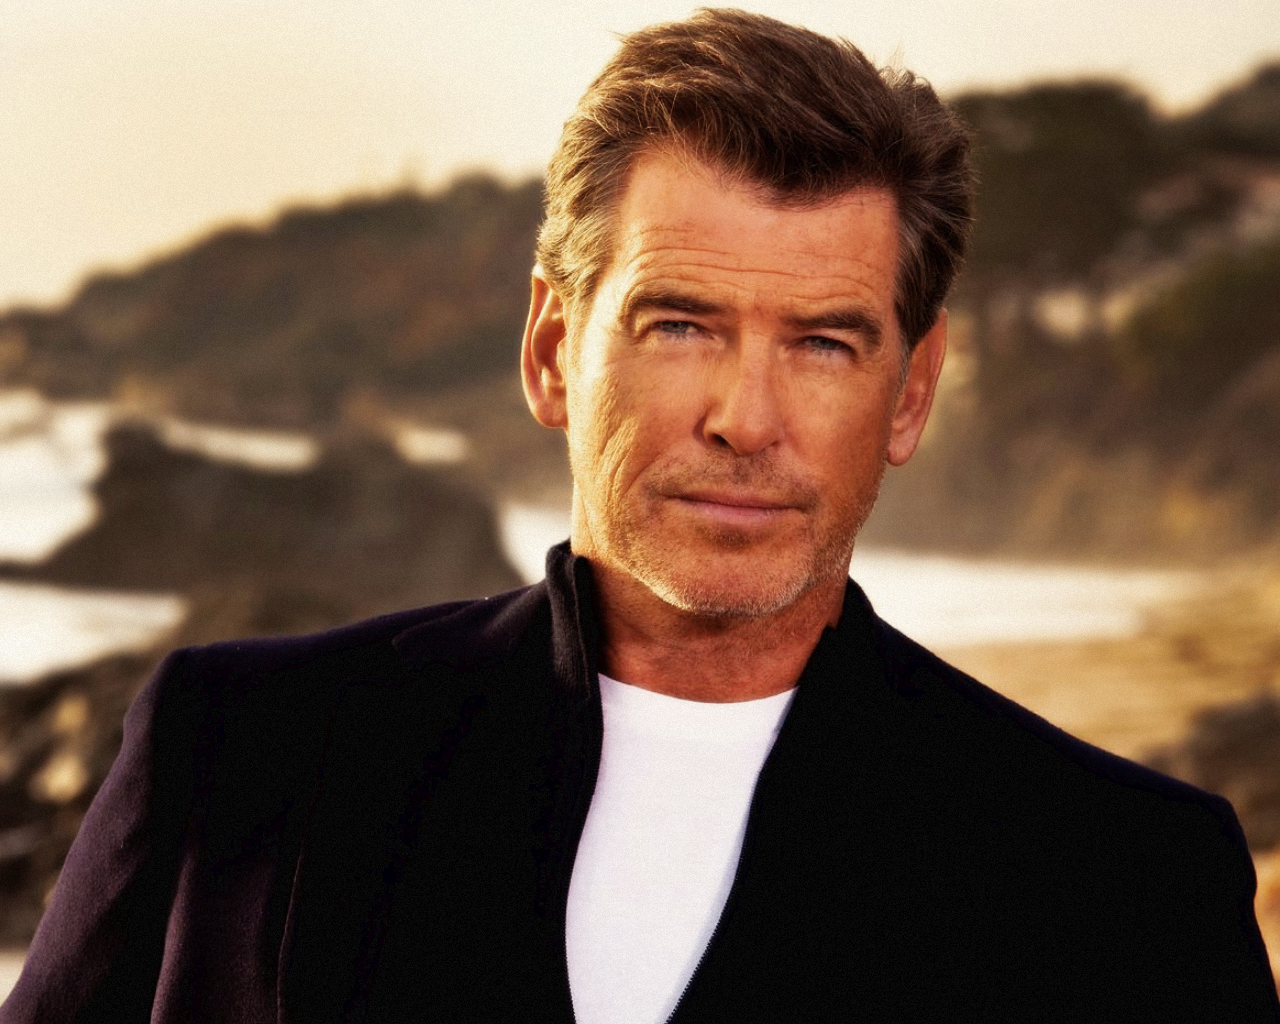 Pierce Brosnan Finds Comfort through Prayer, Catholic Faith after Wife, Daughter's Deaths | Gospelherald.com